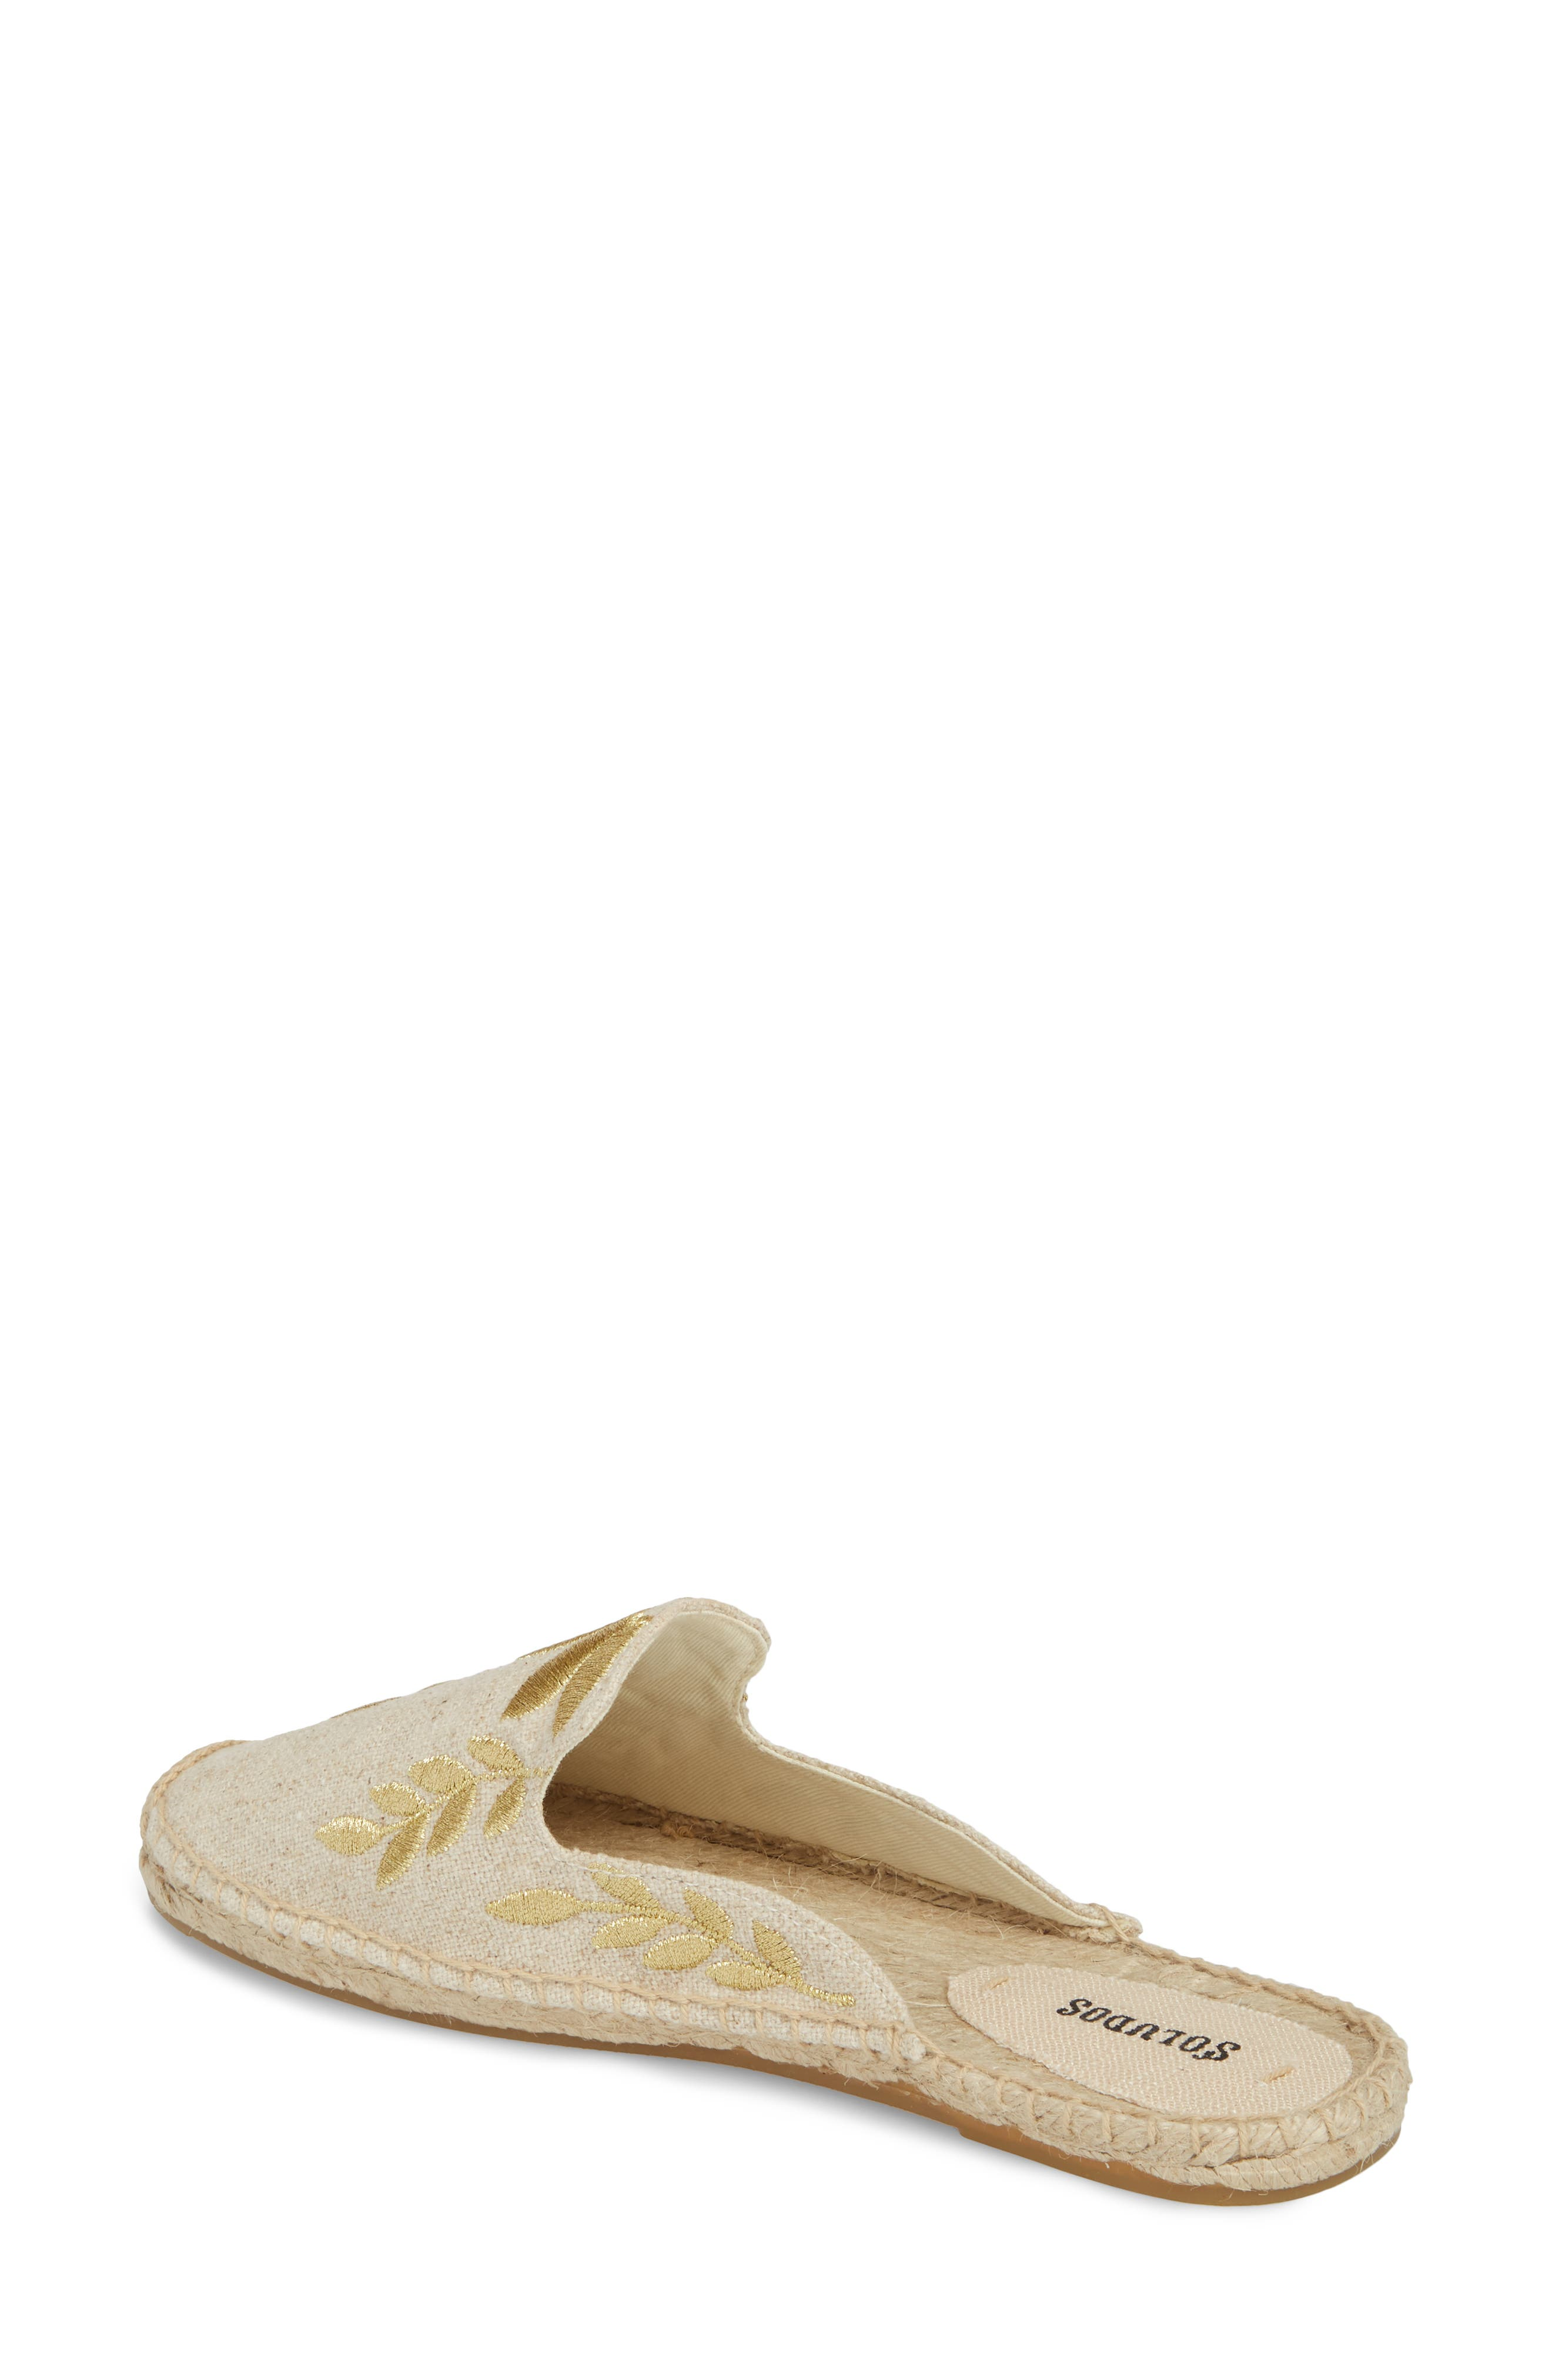 Leaf Embroidered Loafer Mule,                             Alternate thumbnail 2, color,                             Sand/ Metallic